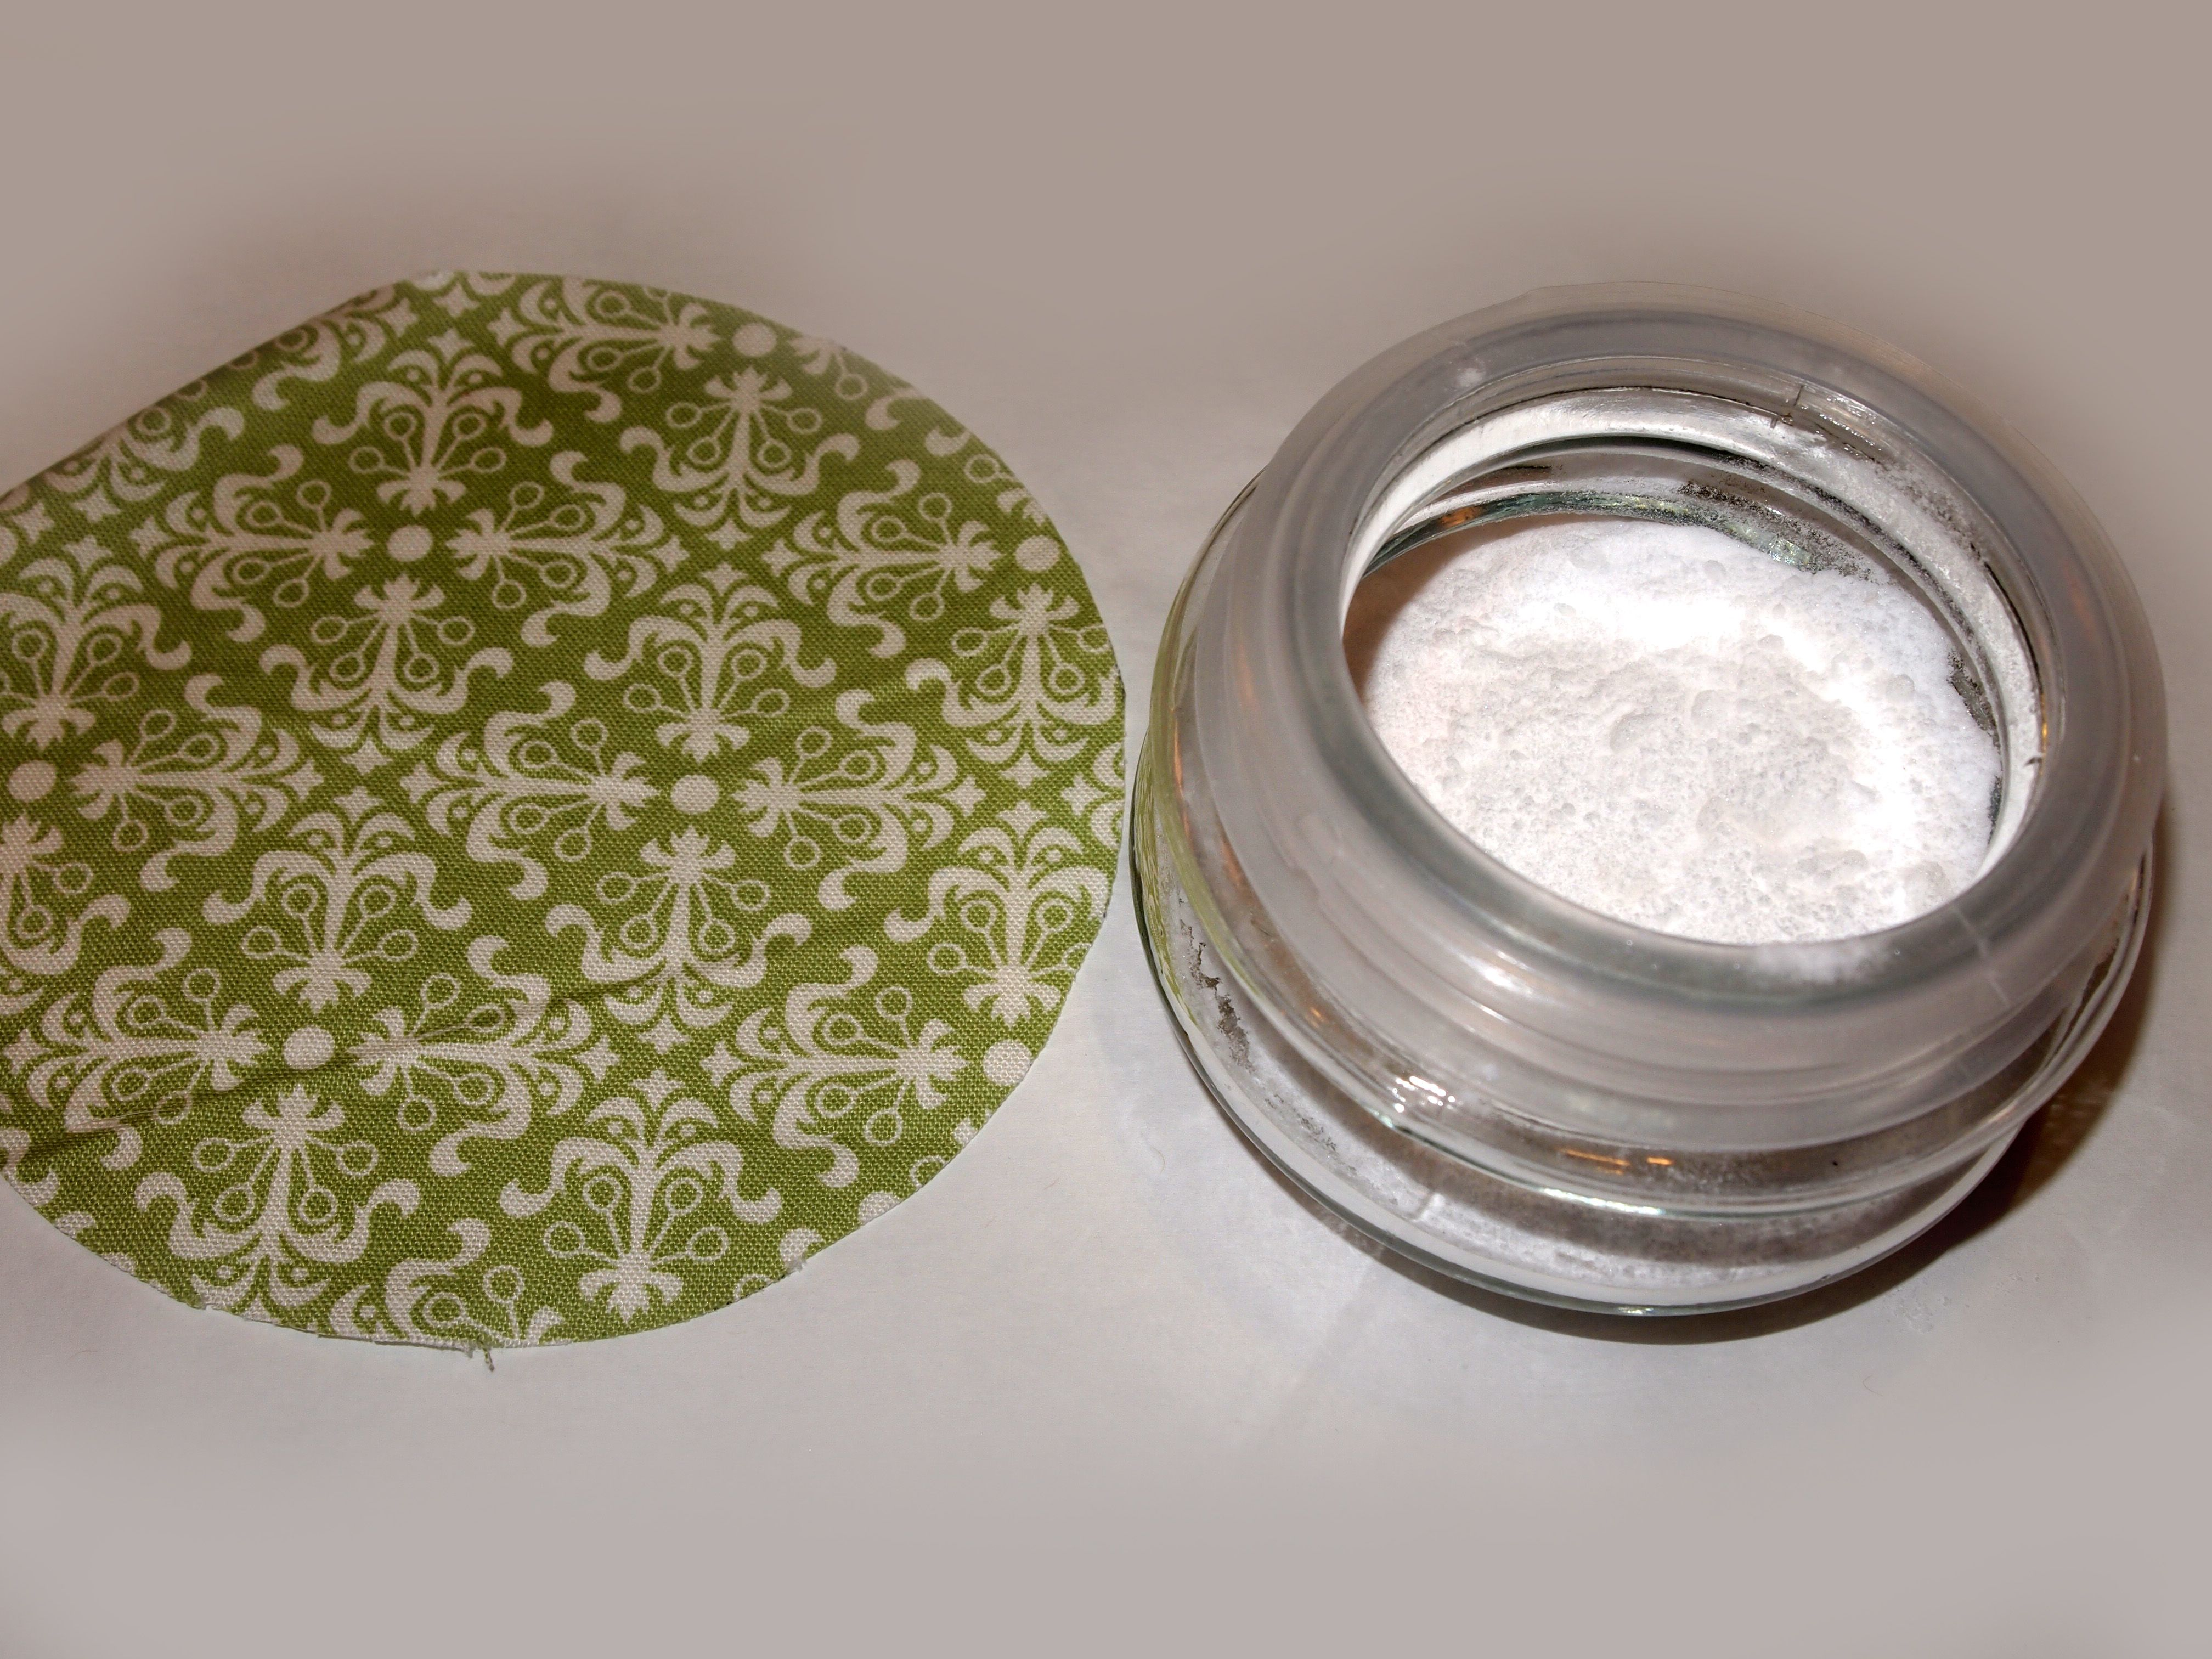 Baking Soda Cleaning Tips P4251630 4,032 3,024 Pixels